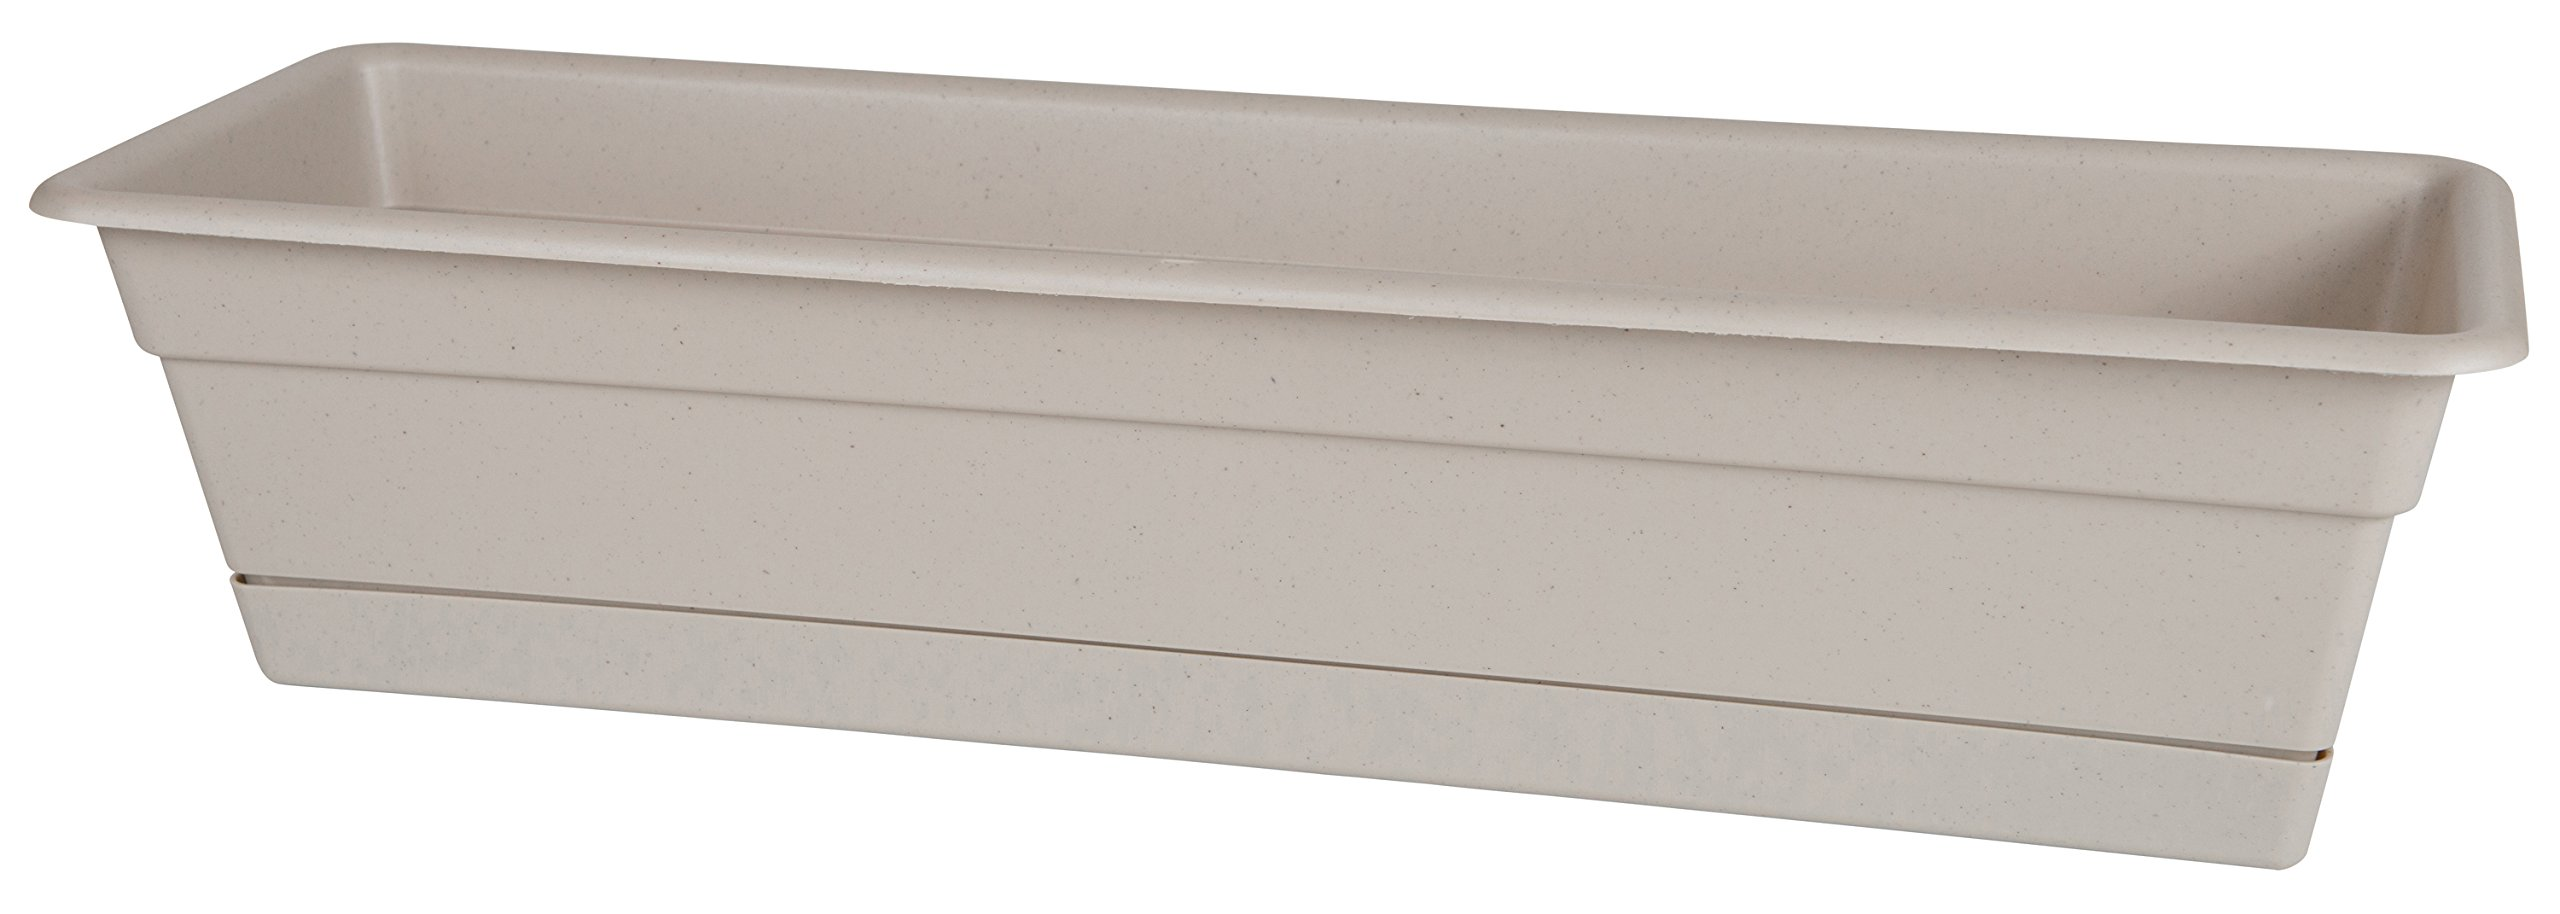 Bloem Dura Cotta Window Box Planter w/Tray, 18'', Taupe (DCBT18-35)